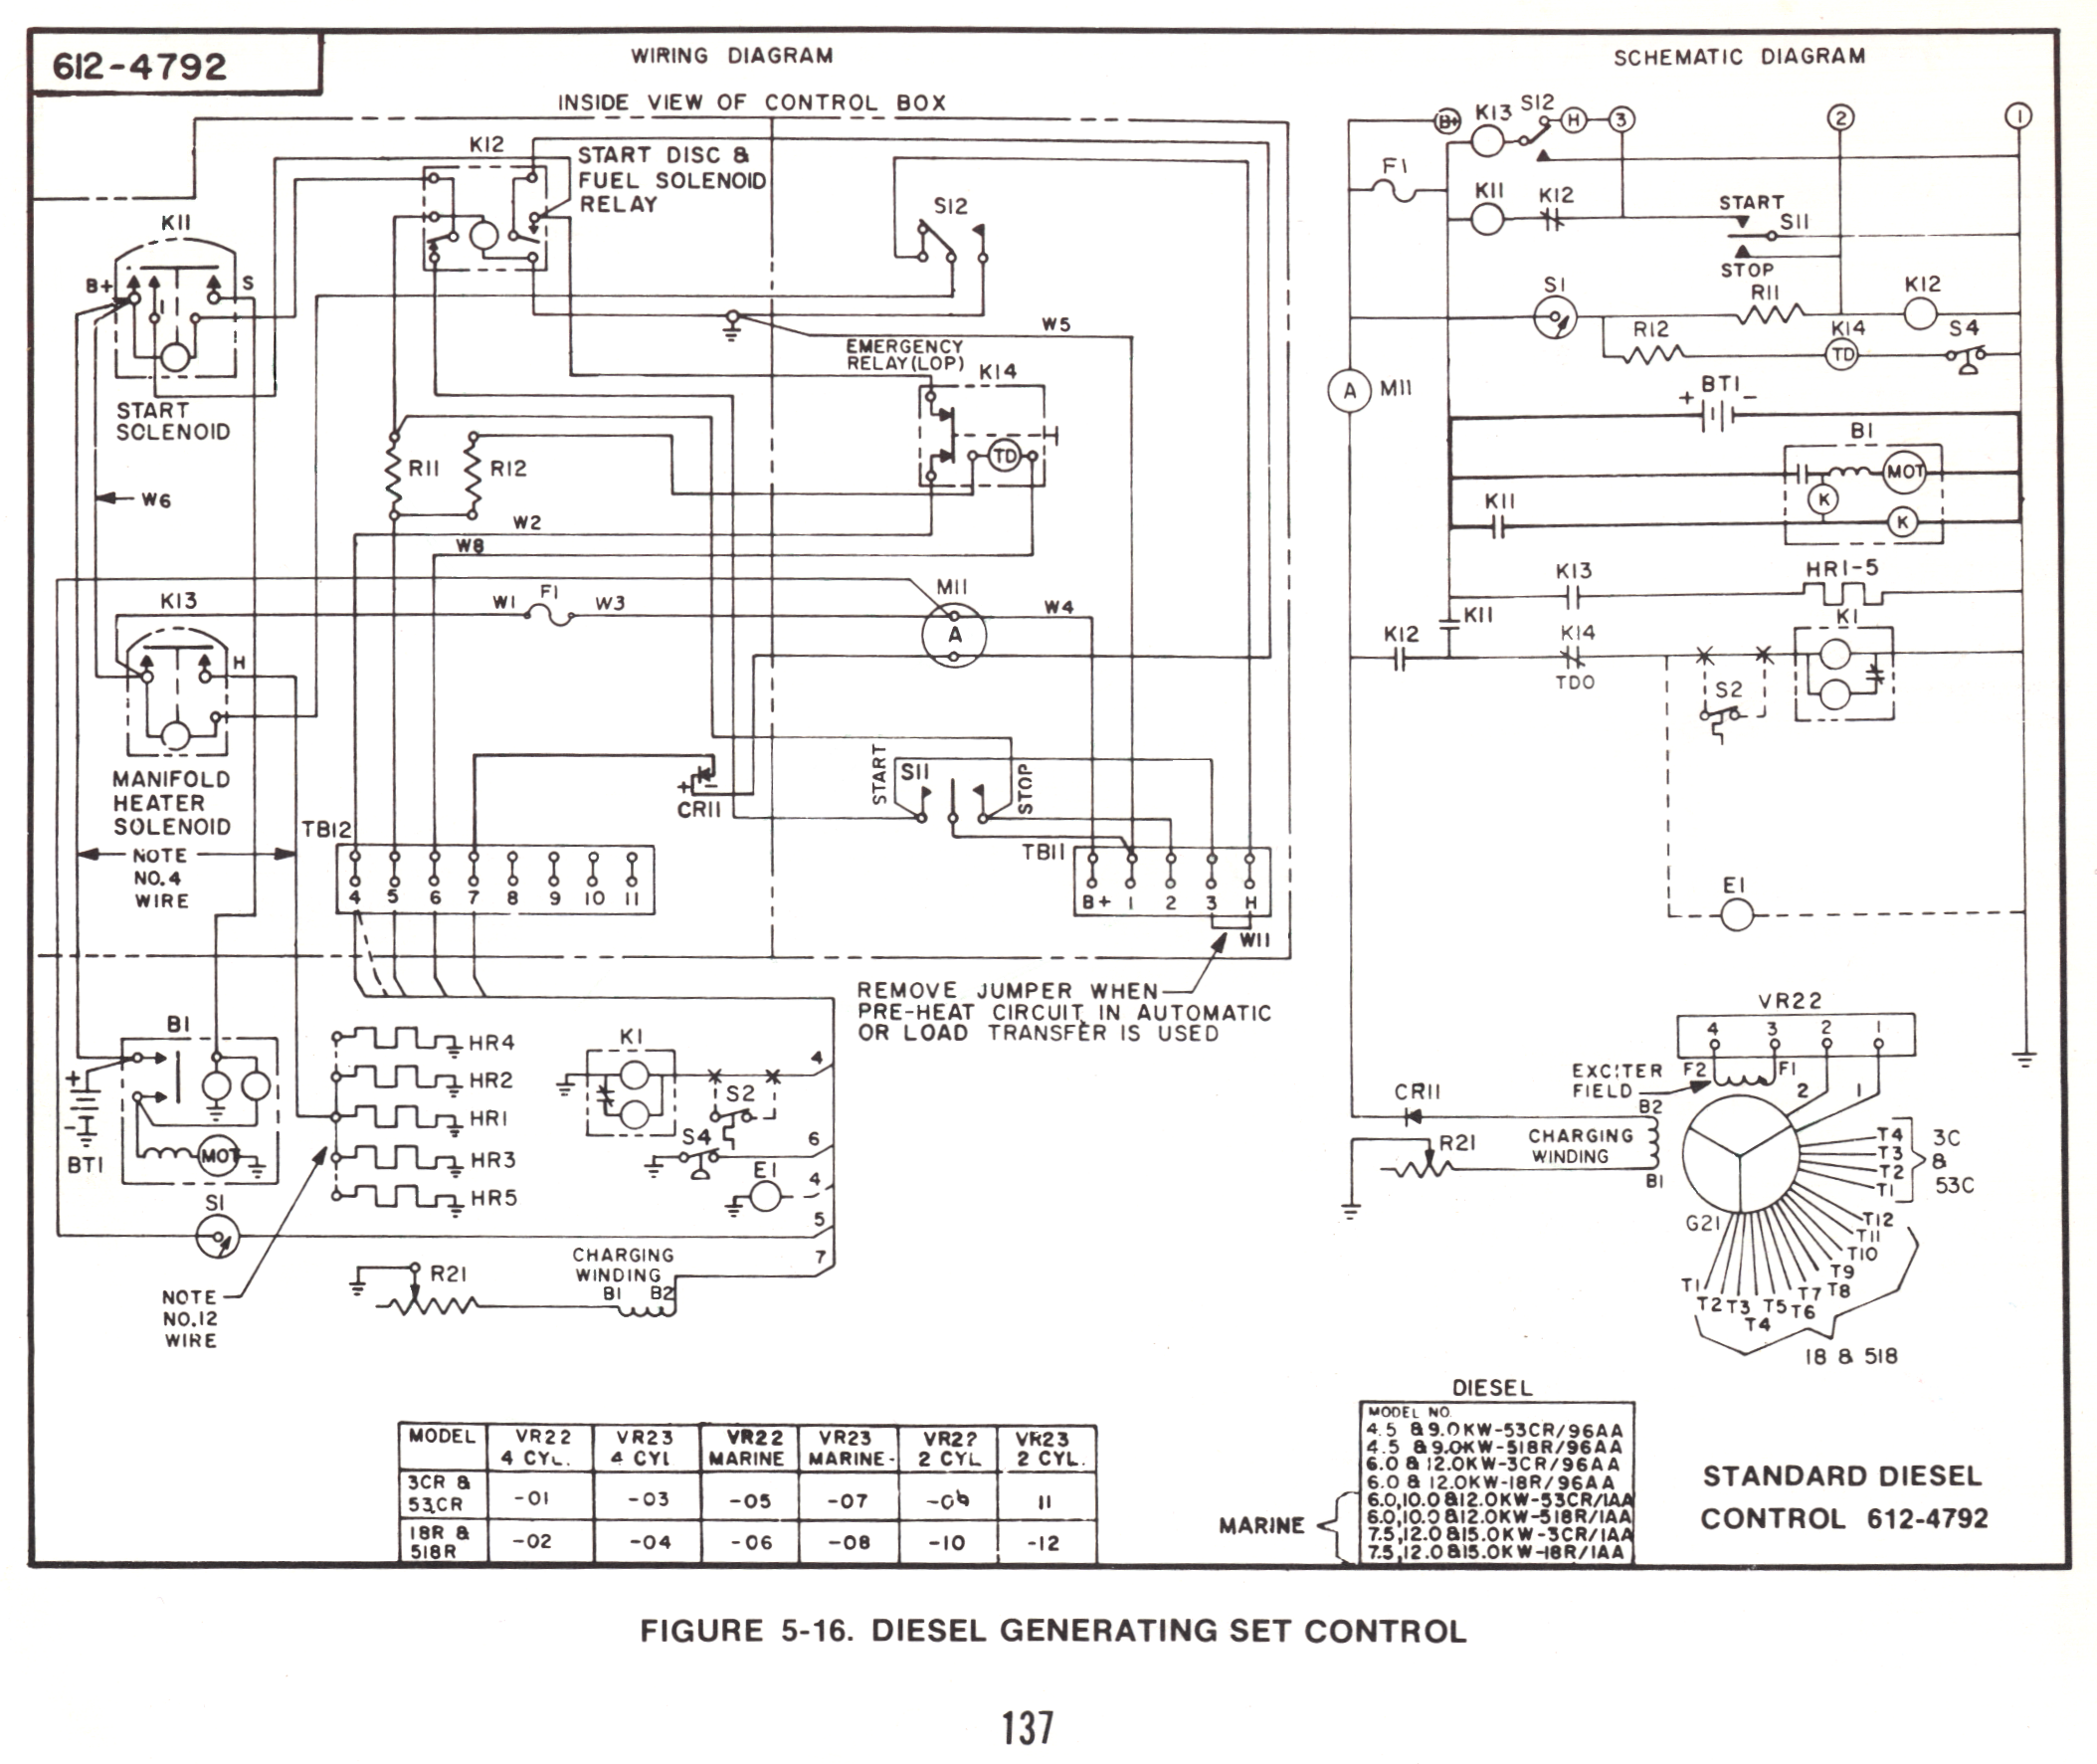 Onan_Diesel_Controls_612 4792_b onan wiring diagram onan wiring diagram 611 1127 \u2022 wiring diagrams onan 5500 generator wiring diagram at reclaimingppi.co